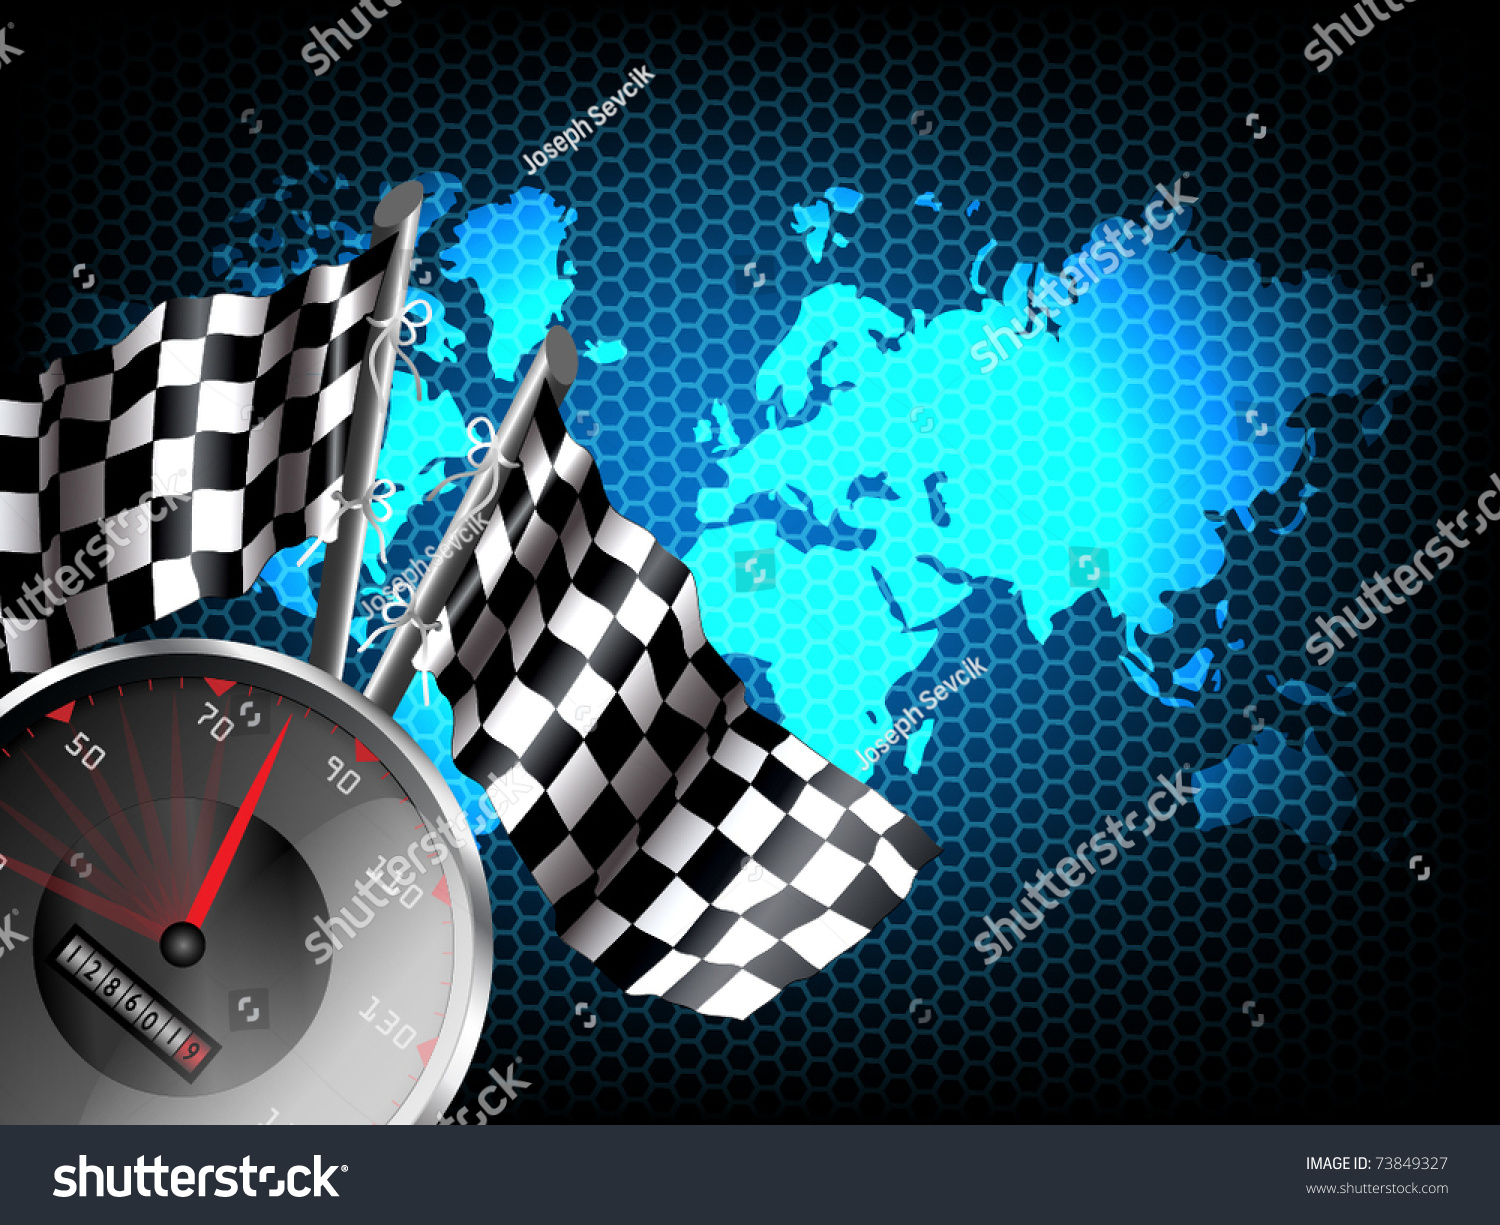 Royalty free image from shutterstock id 73849327